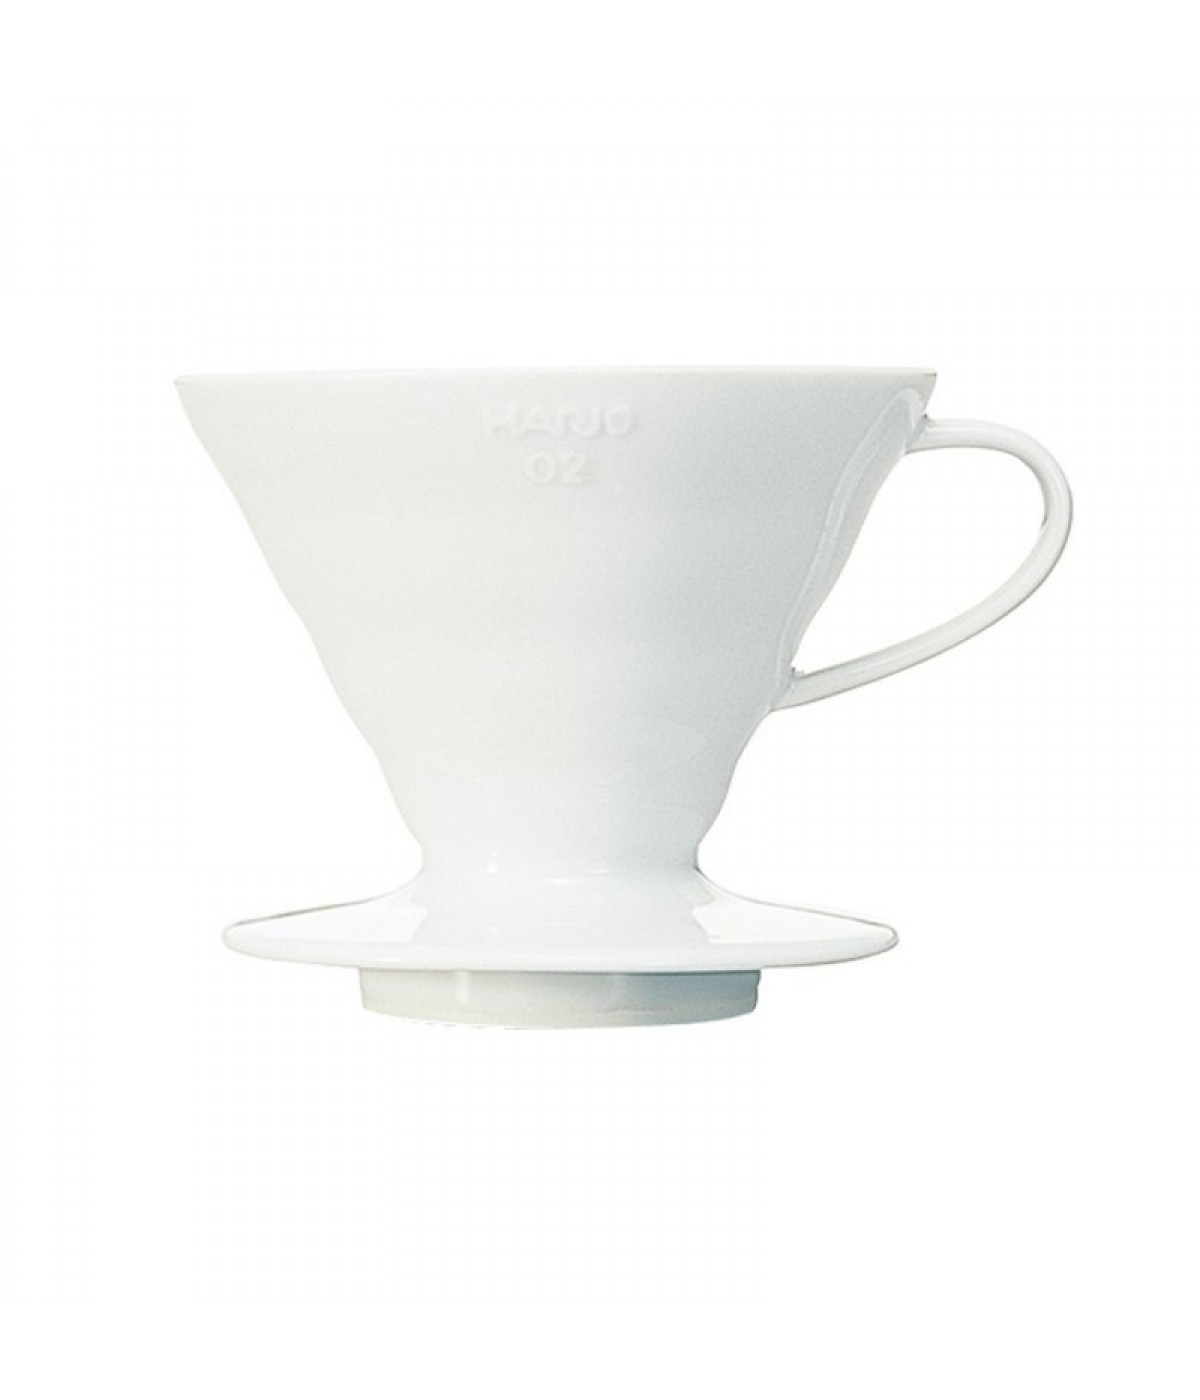 Hario V60 Ceramic Coffee Dripper - 2 cups